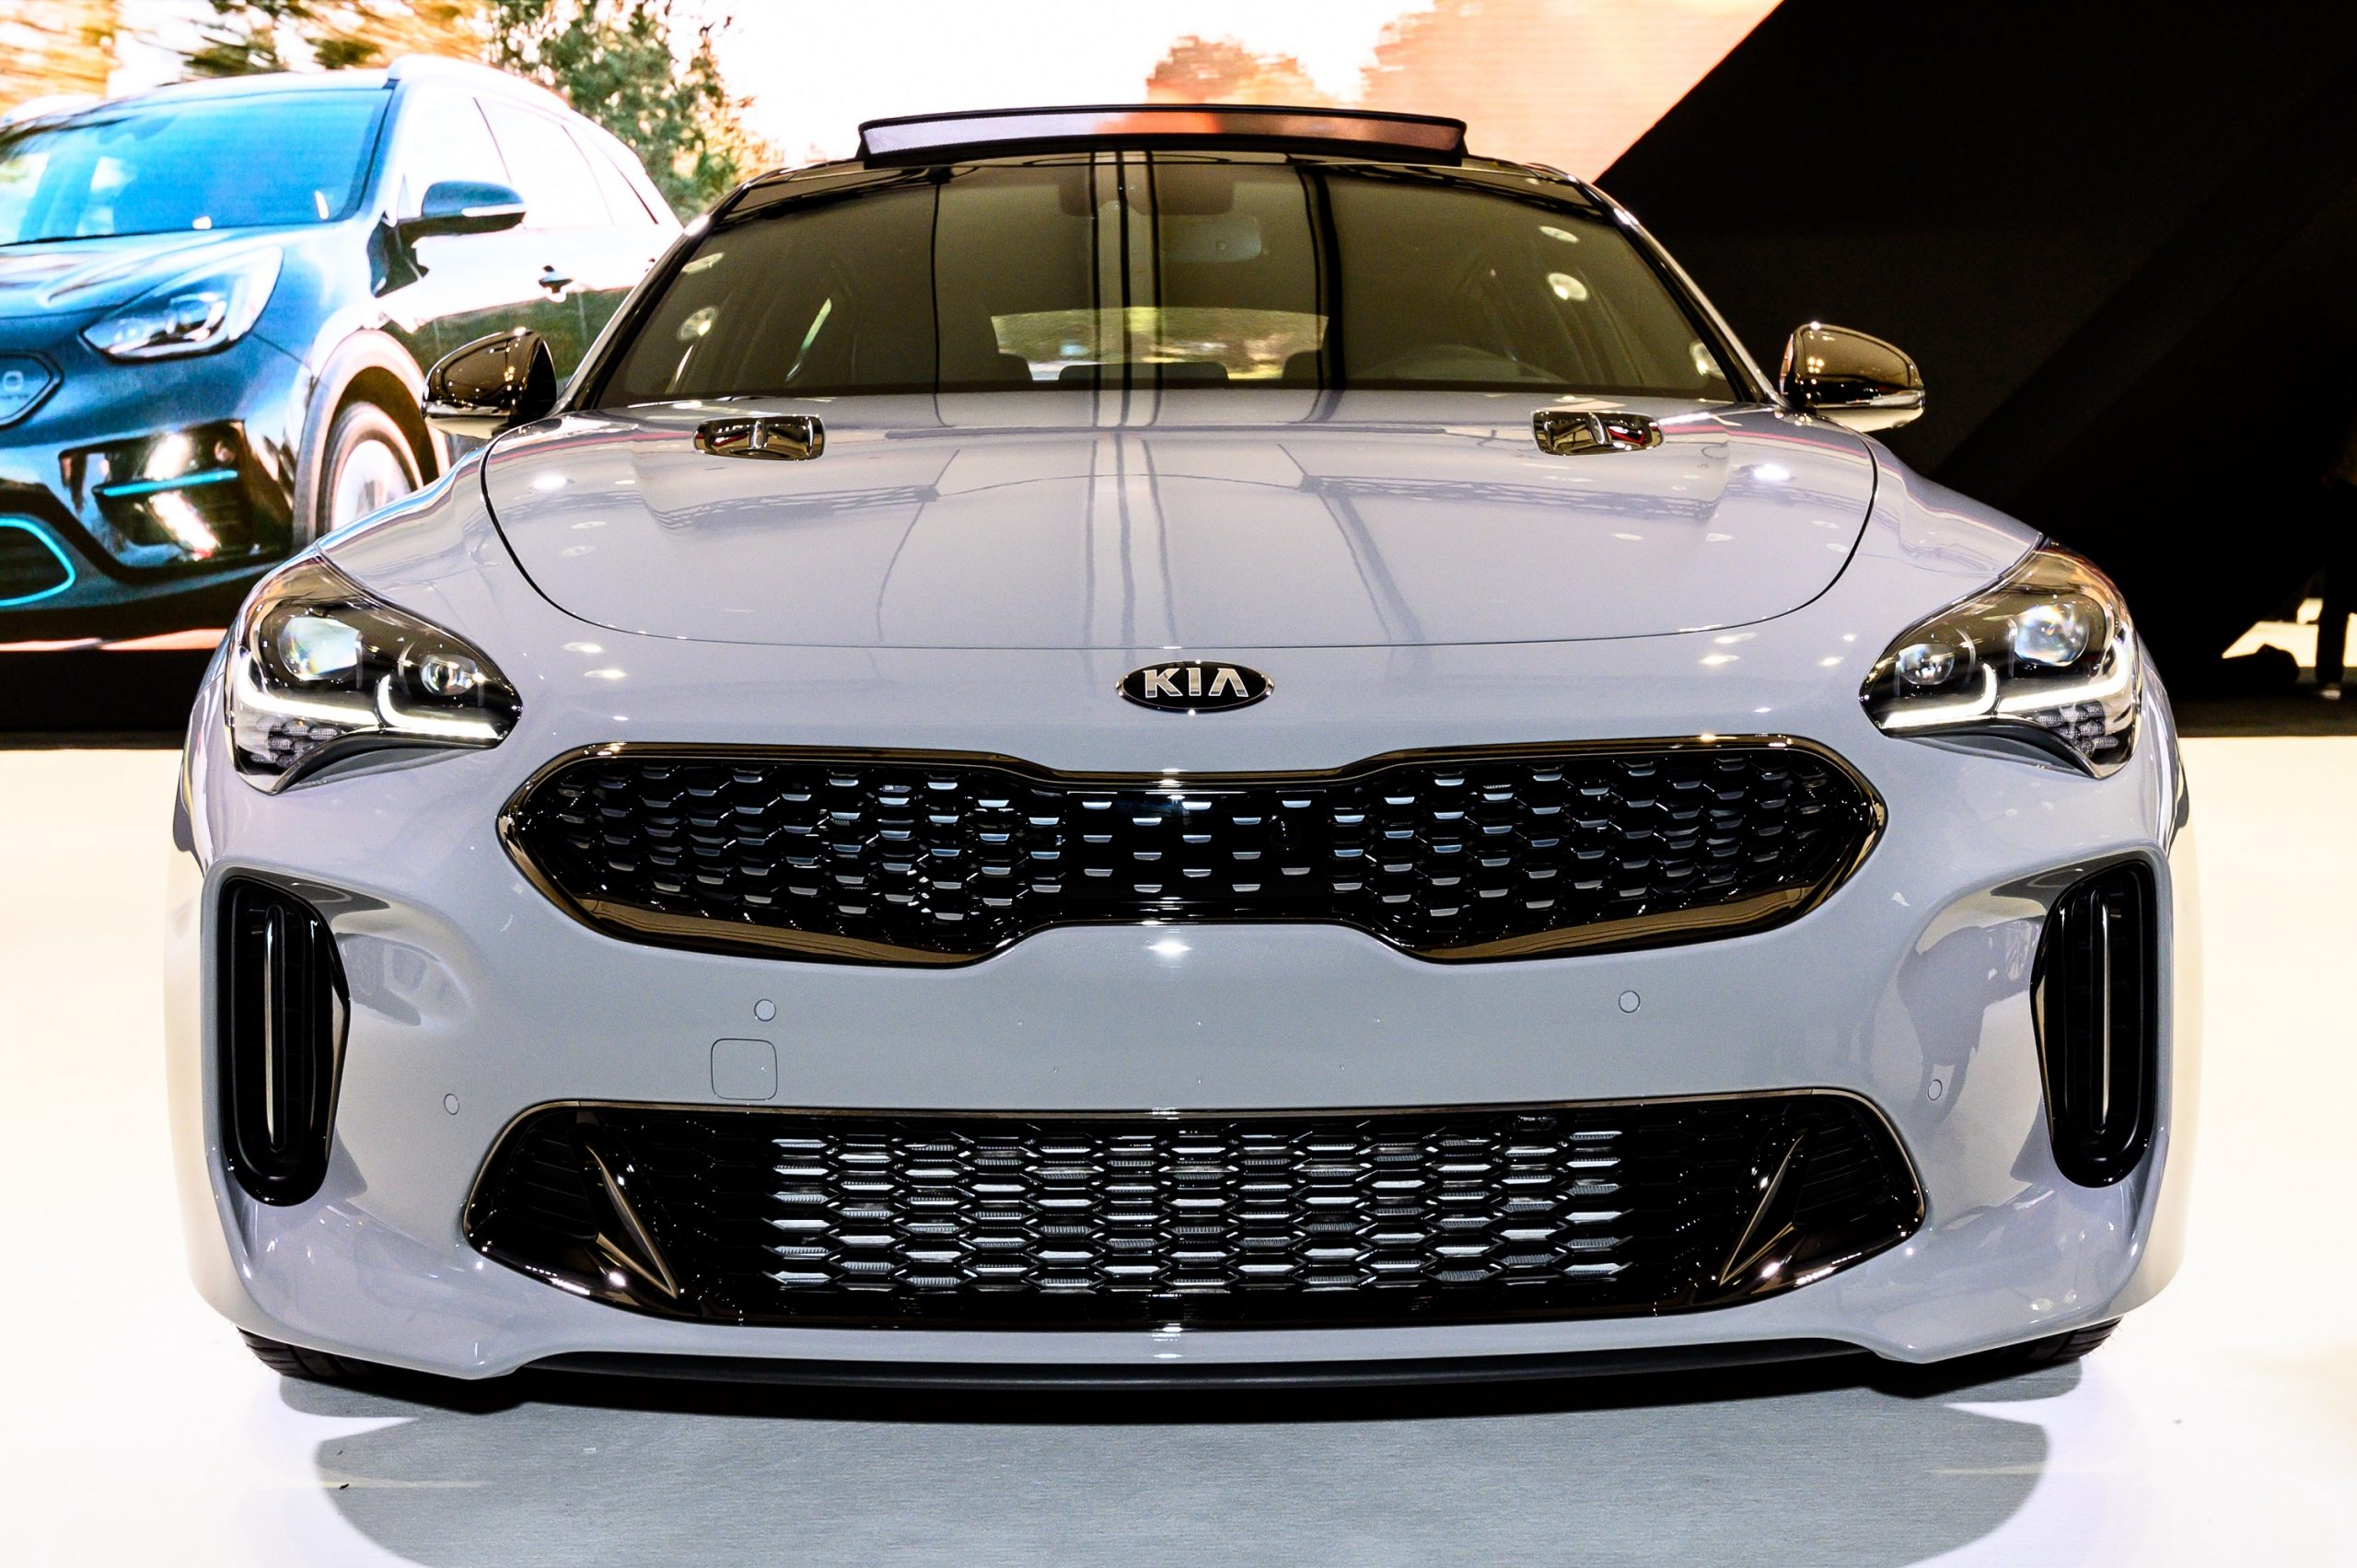 The 2022 Kia Stinger GT, shot from the front at an auto show in a pale grey paint